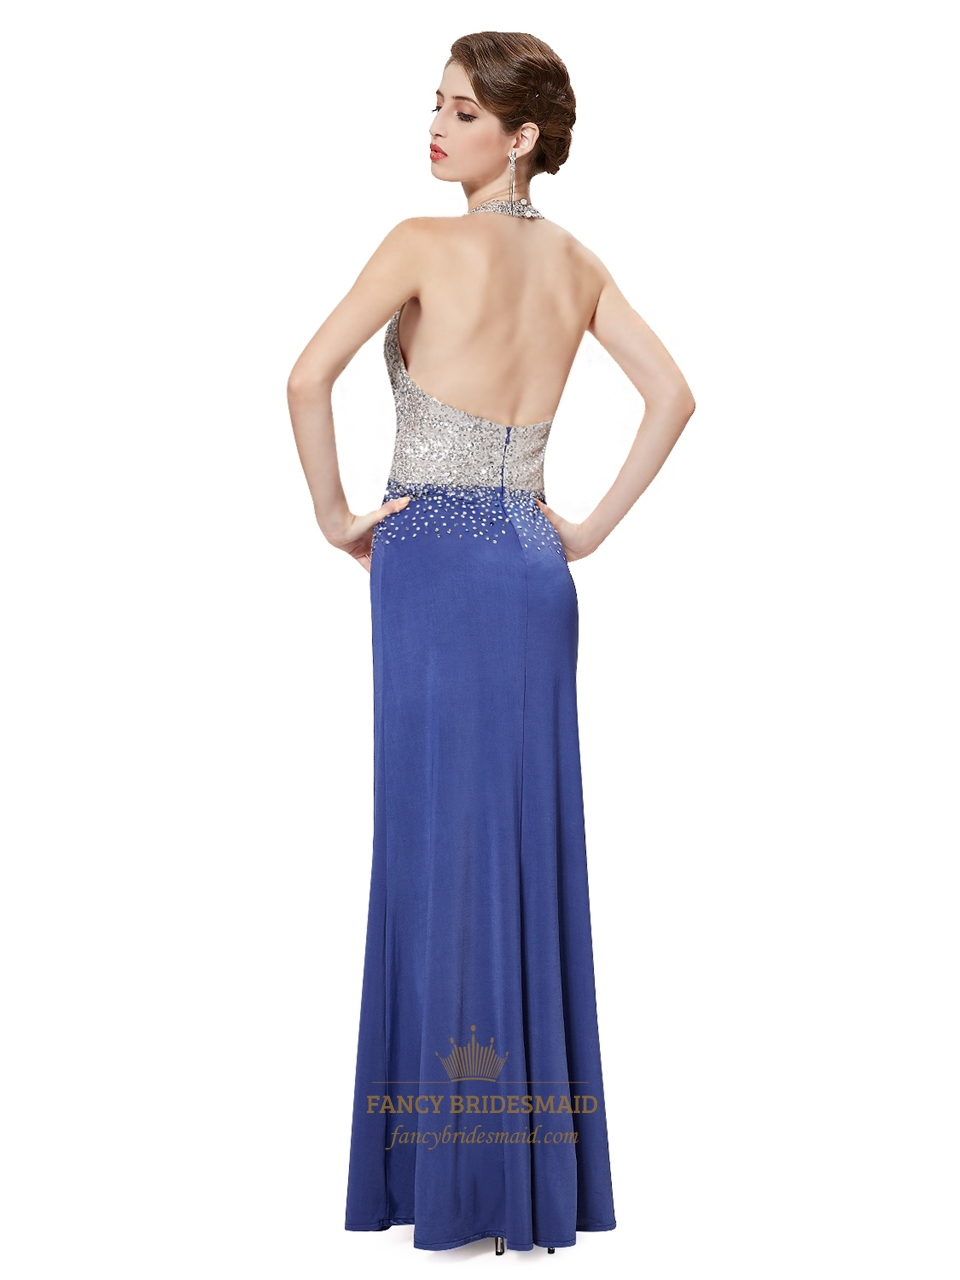 Blue and gold sequin halter sheath side slits prom dress for Sheath wedding dress with beading and side drape